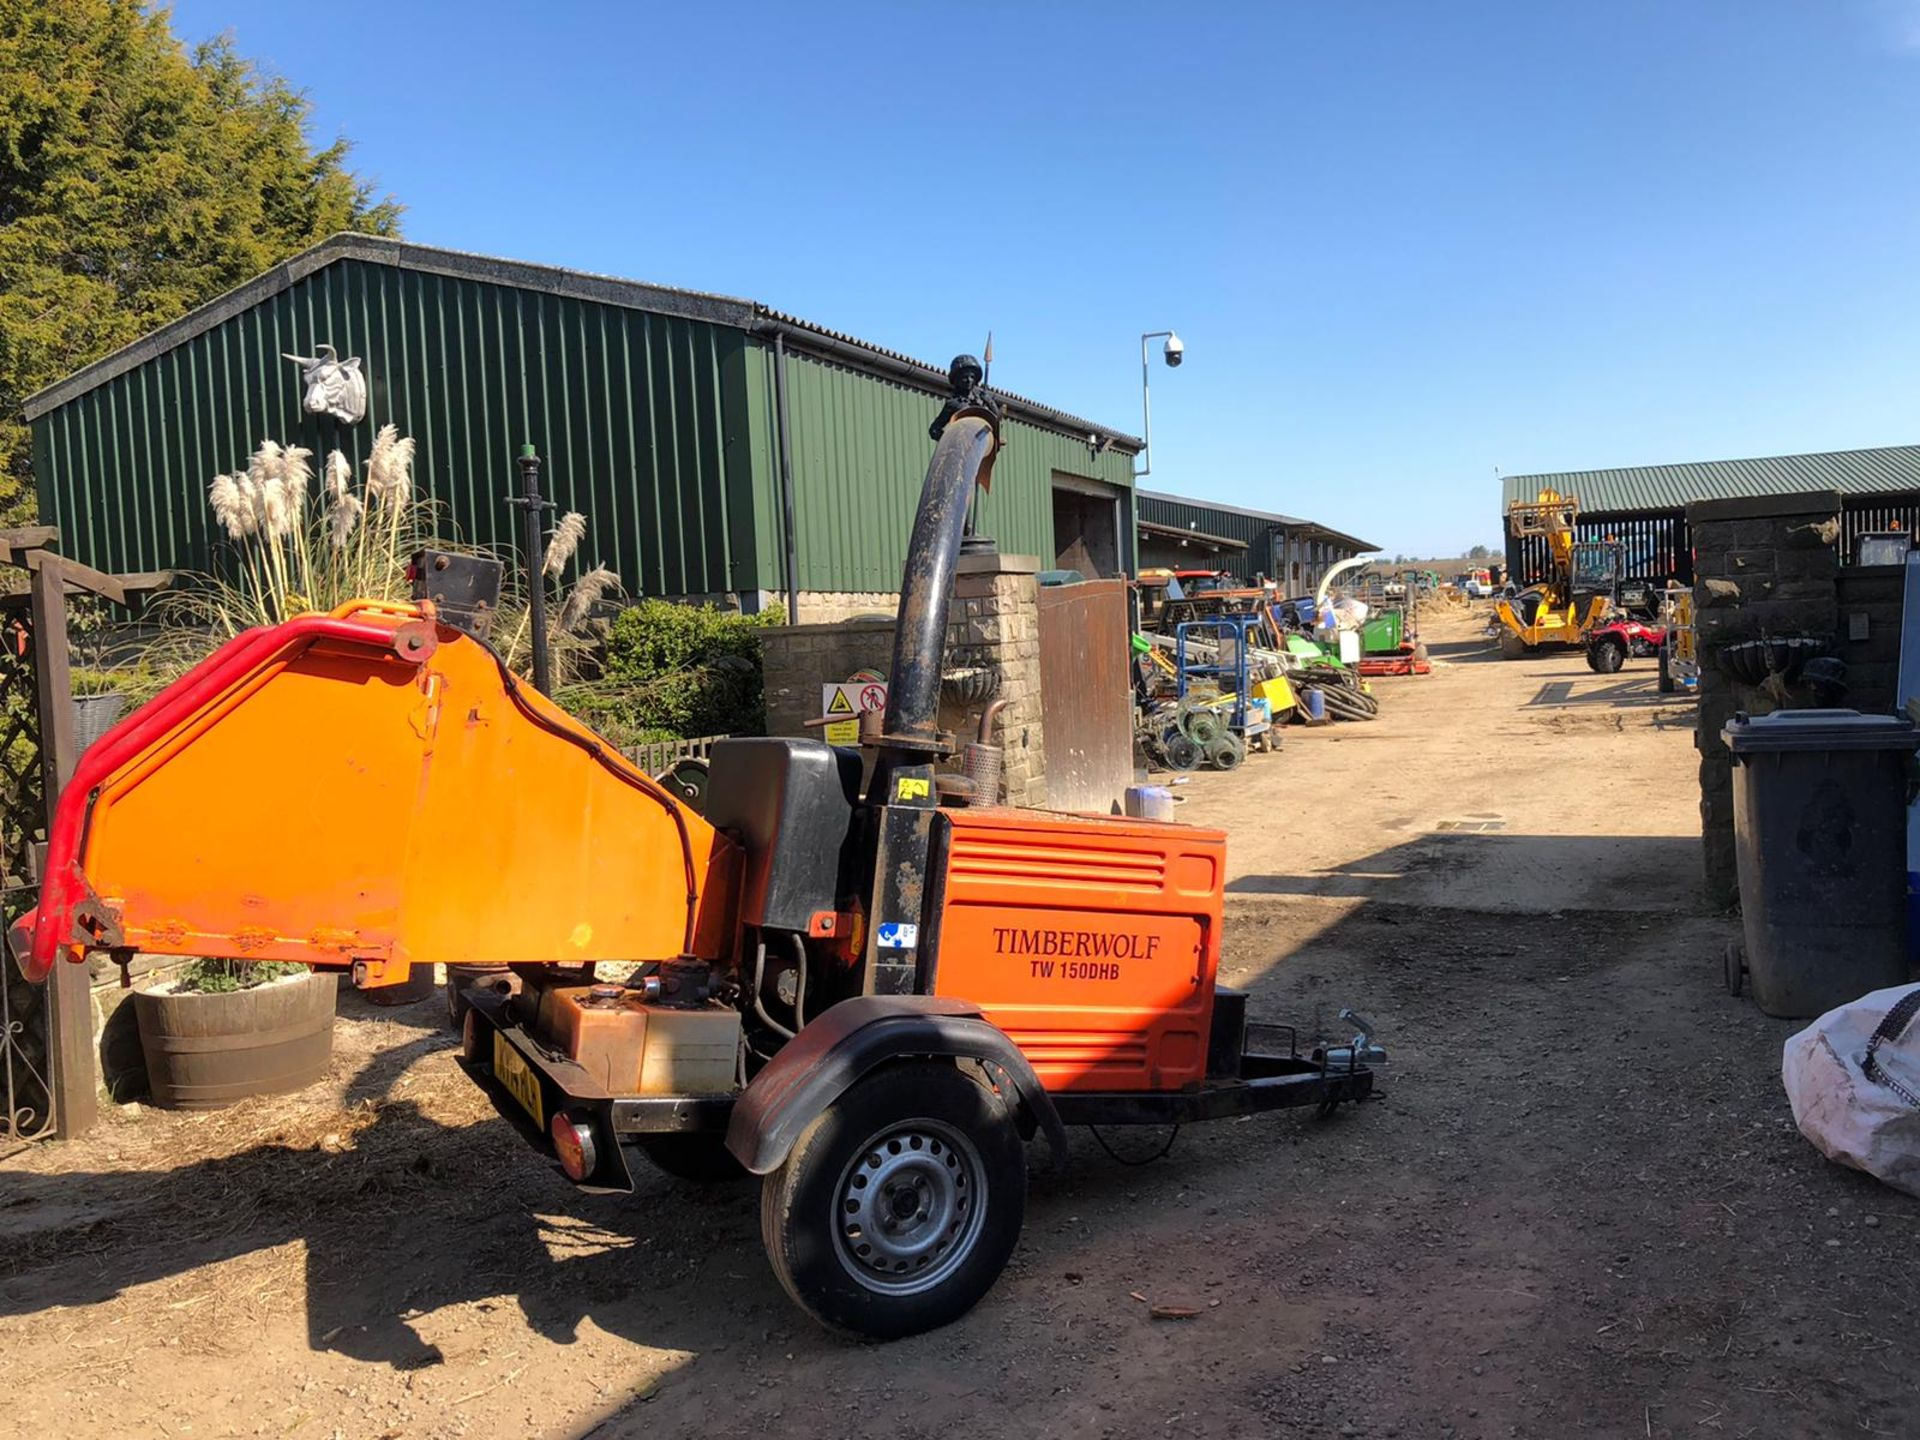 Lot 155 - TIMBERWOLF TW150DHB SINGLE AXLE TOWABLE WOOD CHIPPER, RUNS, WORKS AND CHIPS *PLUS VAT*